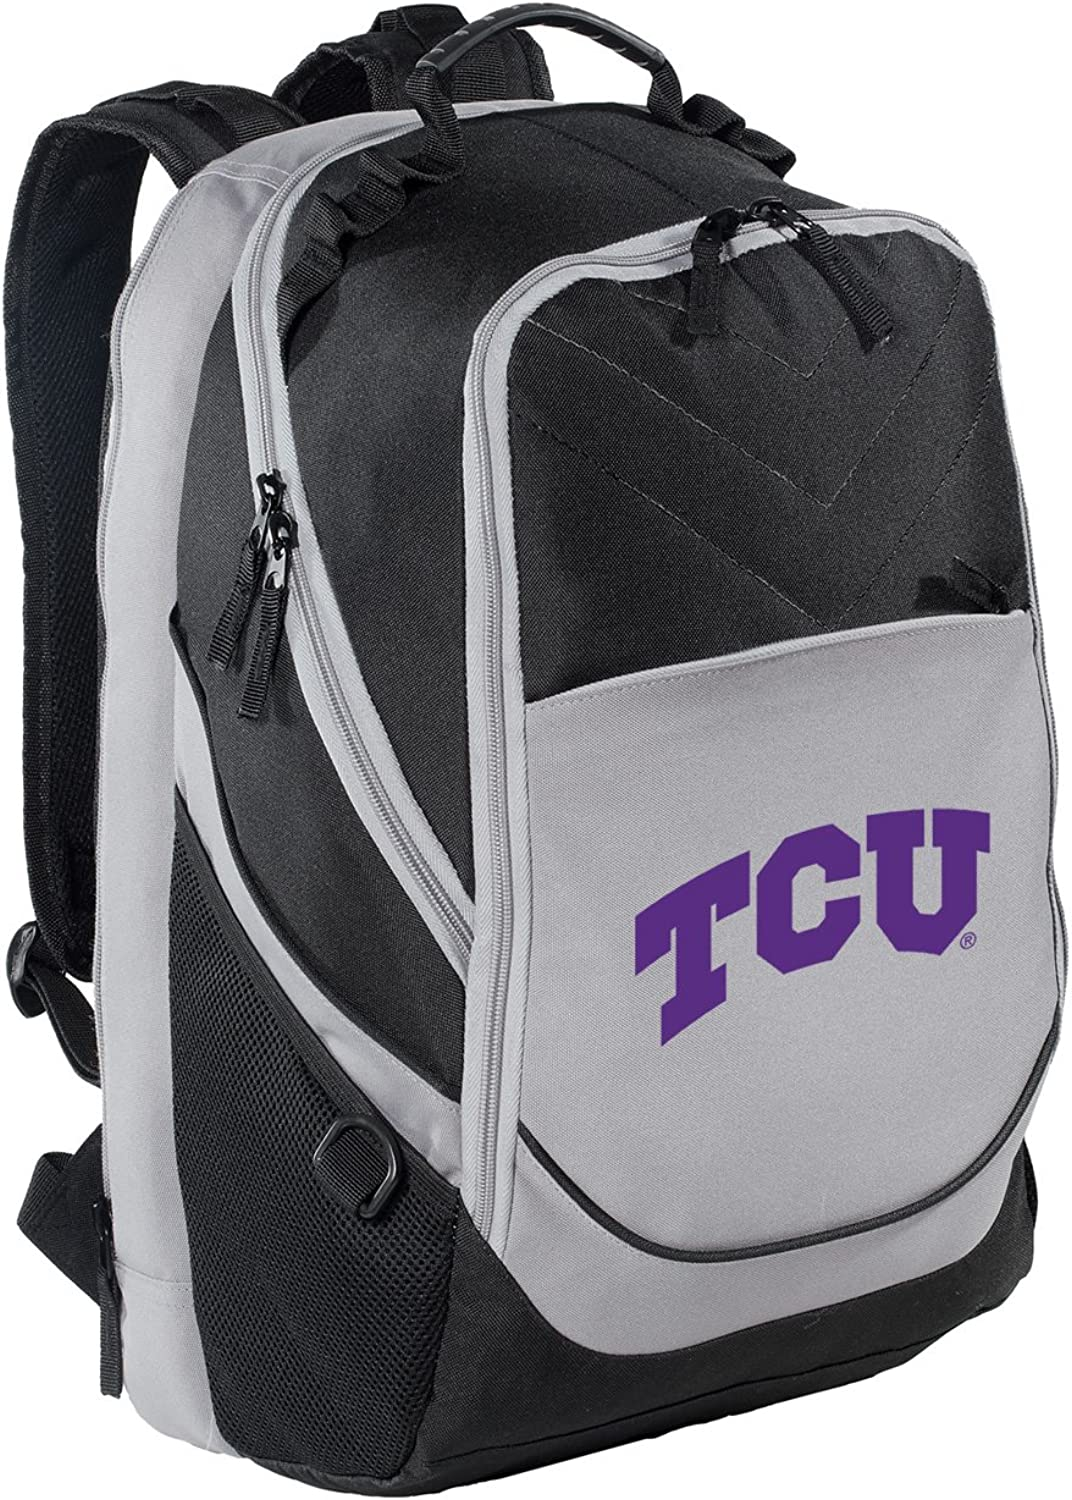 Texas Christian University Backpack TCU Laptop Computer Bag